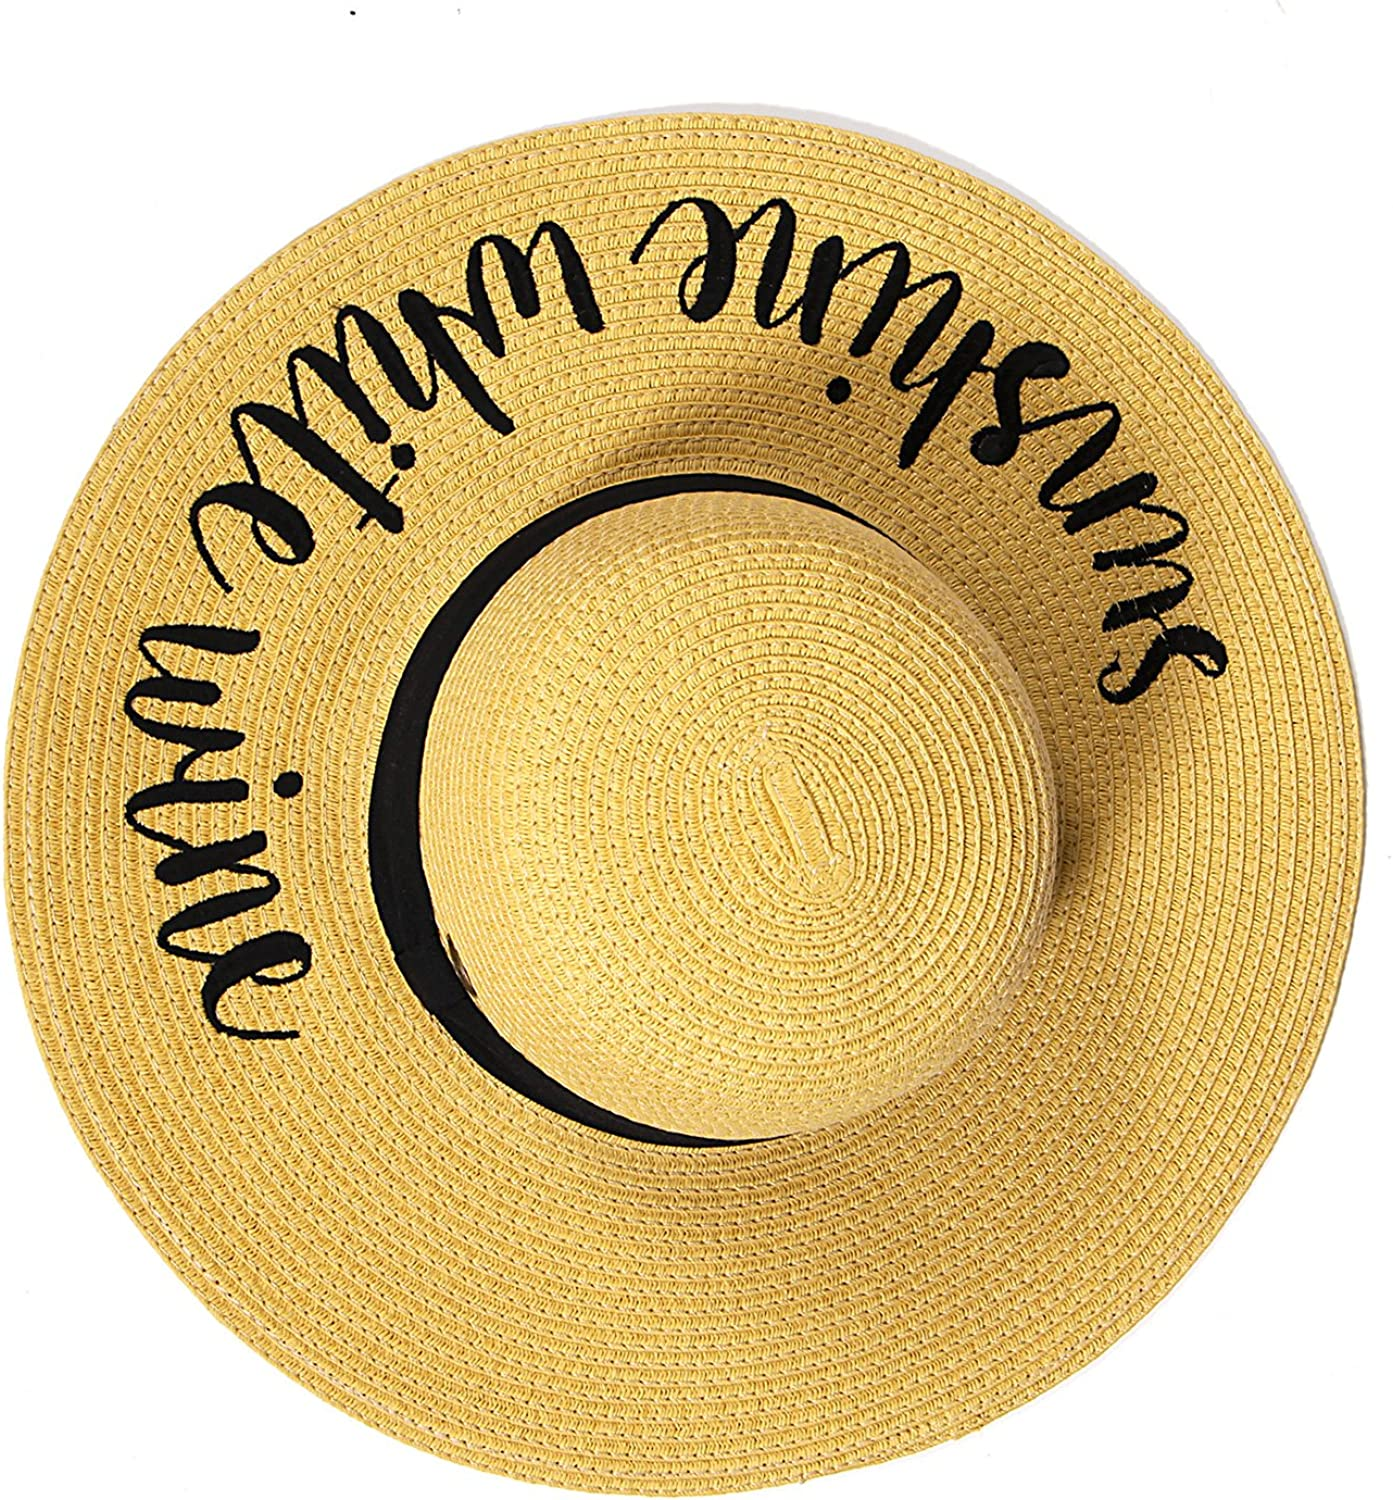 SERENITA Summer Sun Hats Women C.C Hat, Embroidery Lettering Floppy, Wide Brim Sun Predection